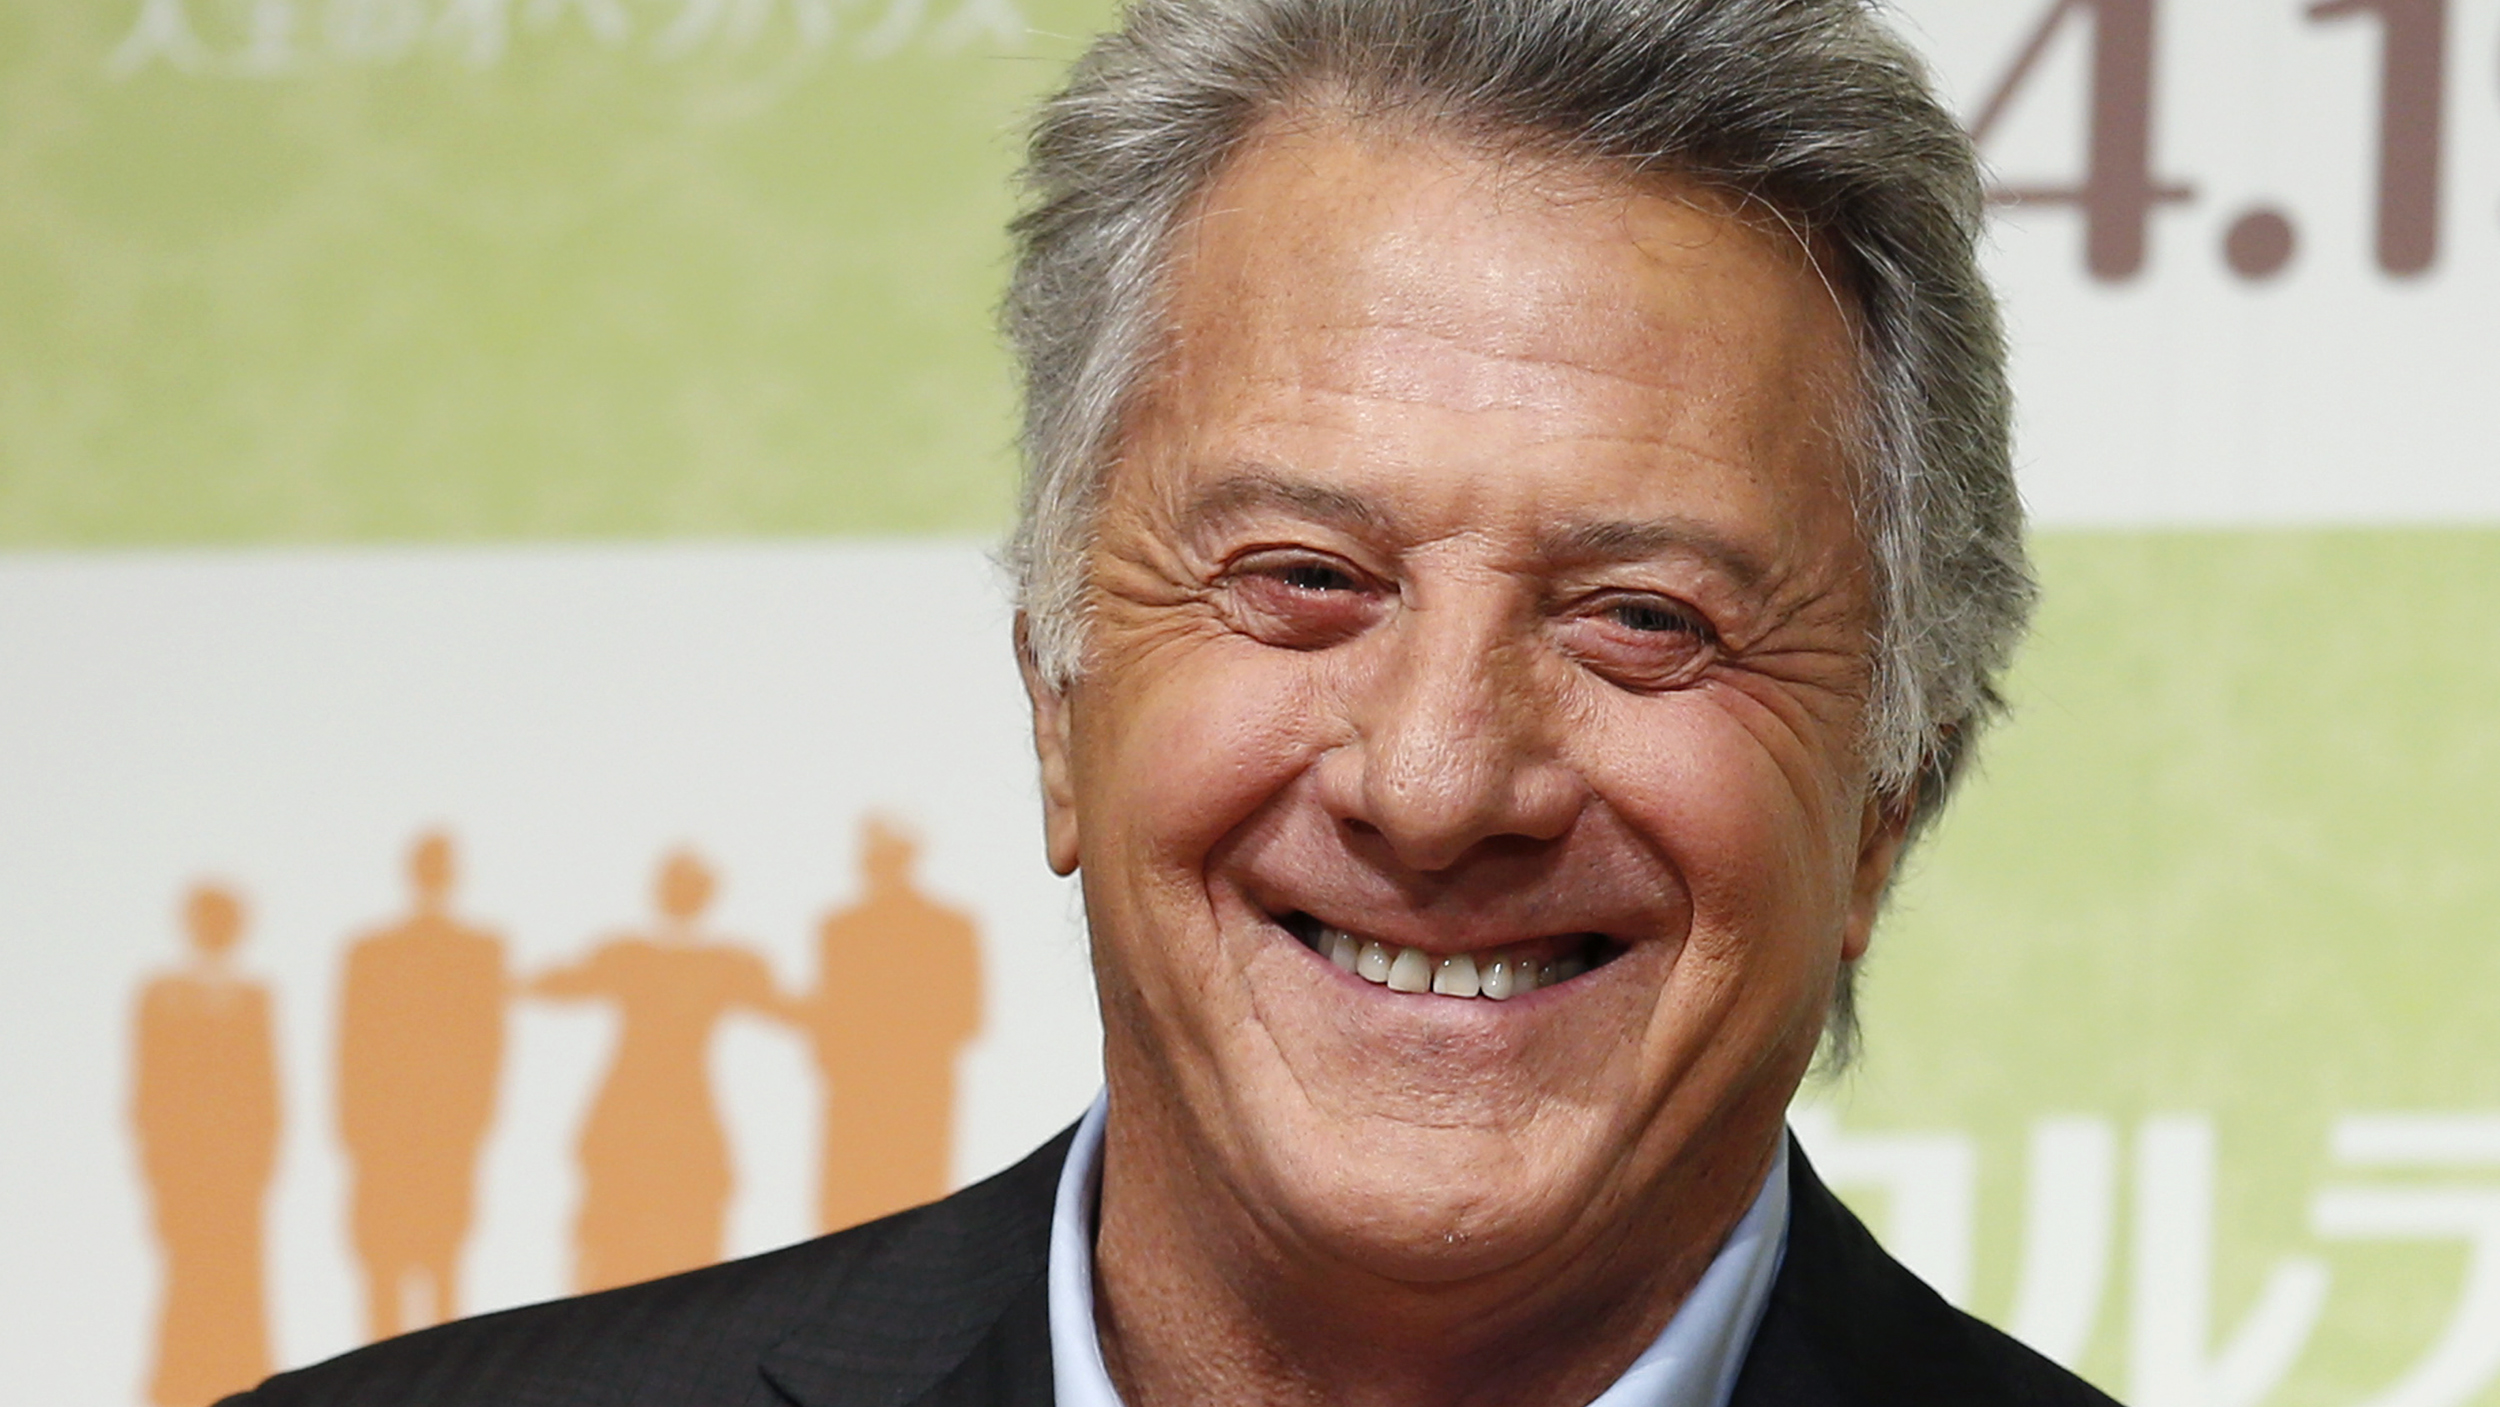 See Dustin Hoffman's amazing method for avoiding paparazzi ...